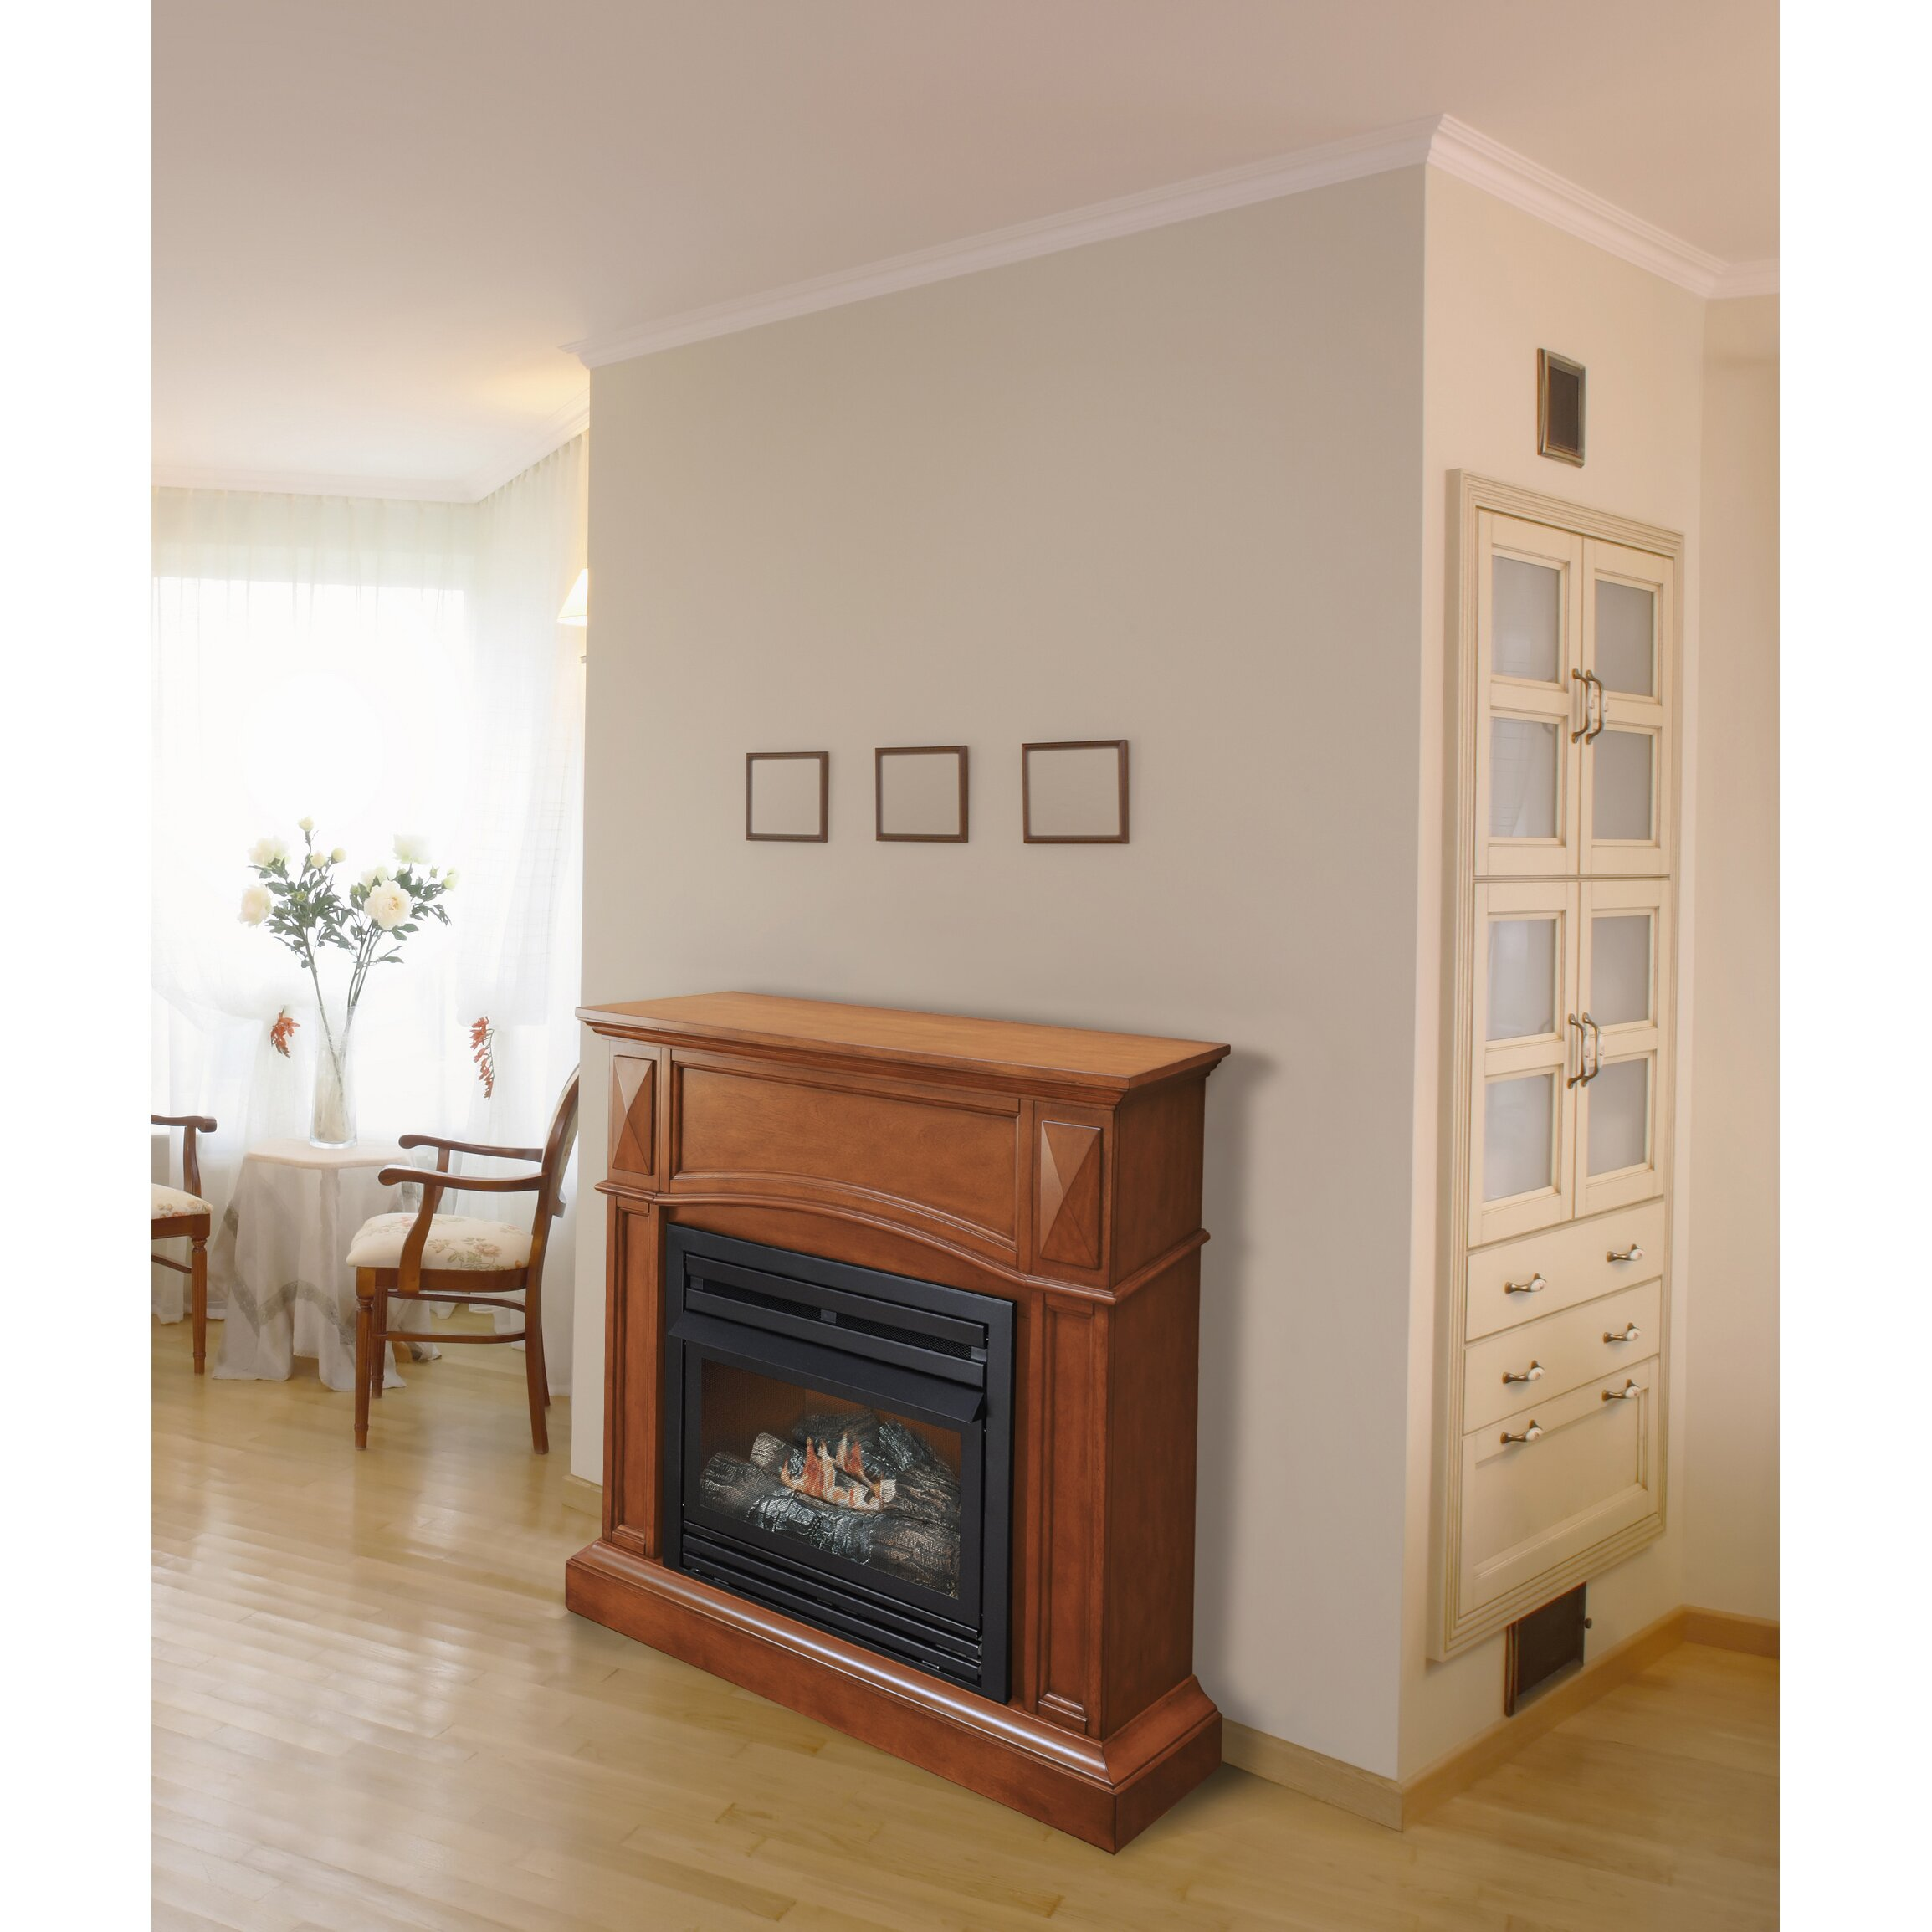 Corner Hearth: Pleasant Hearth Compact Vent-Free Dual Fuel Gas Fireplace